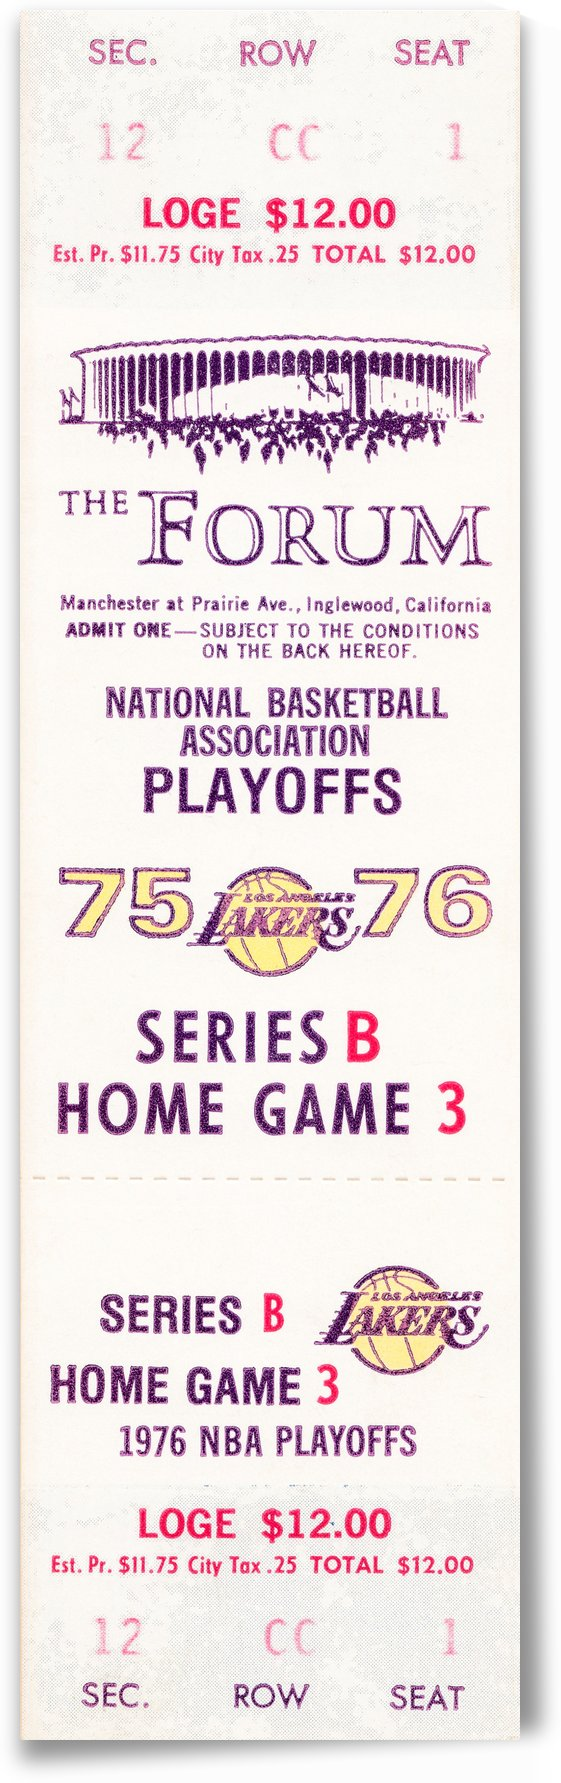 1975 los angeles lakers ticket stub wall art poster canvas print by Row One Brand